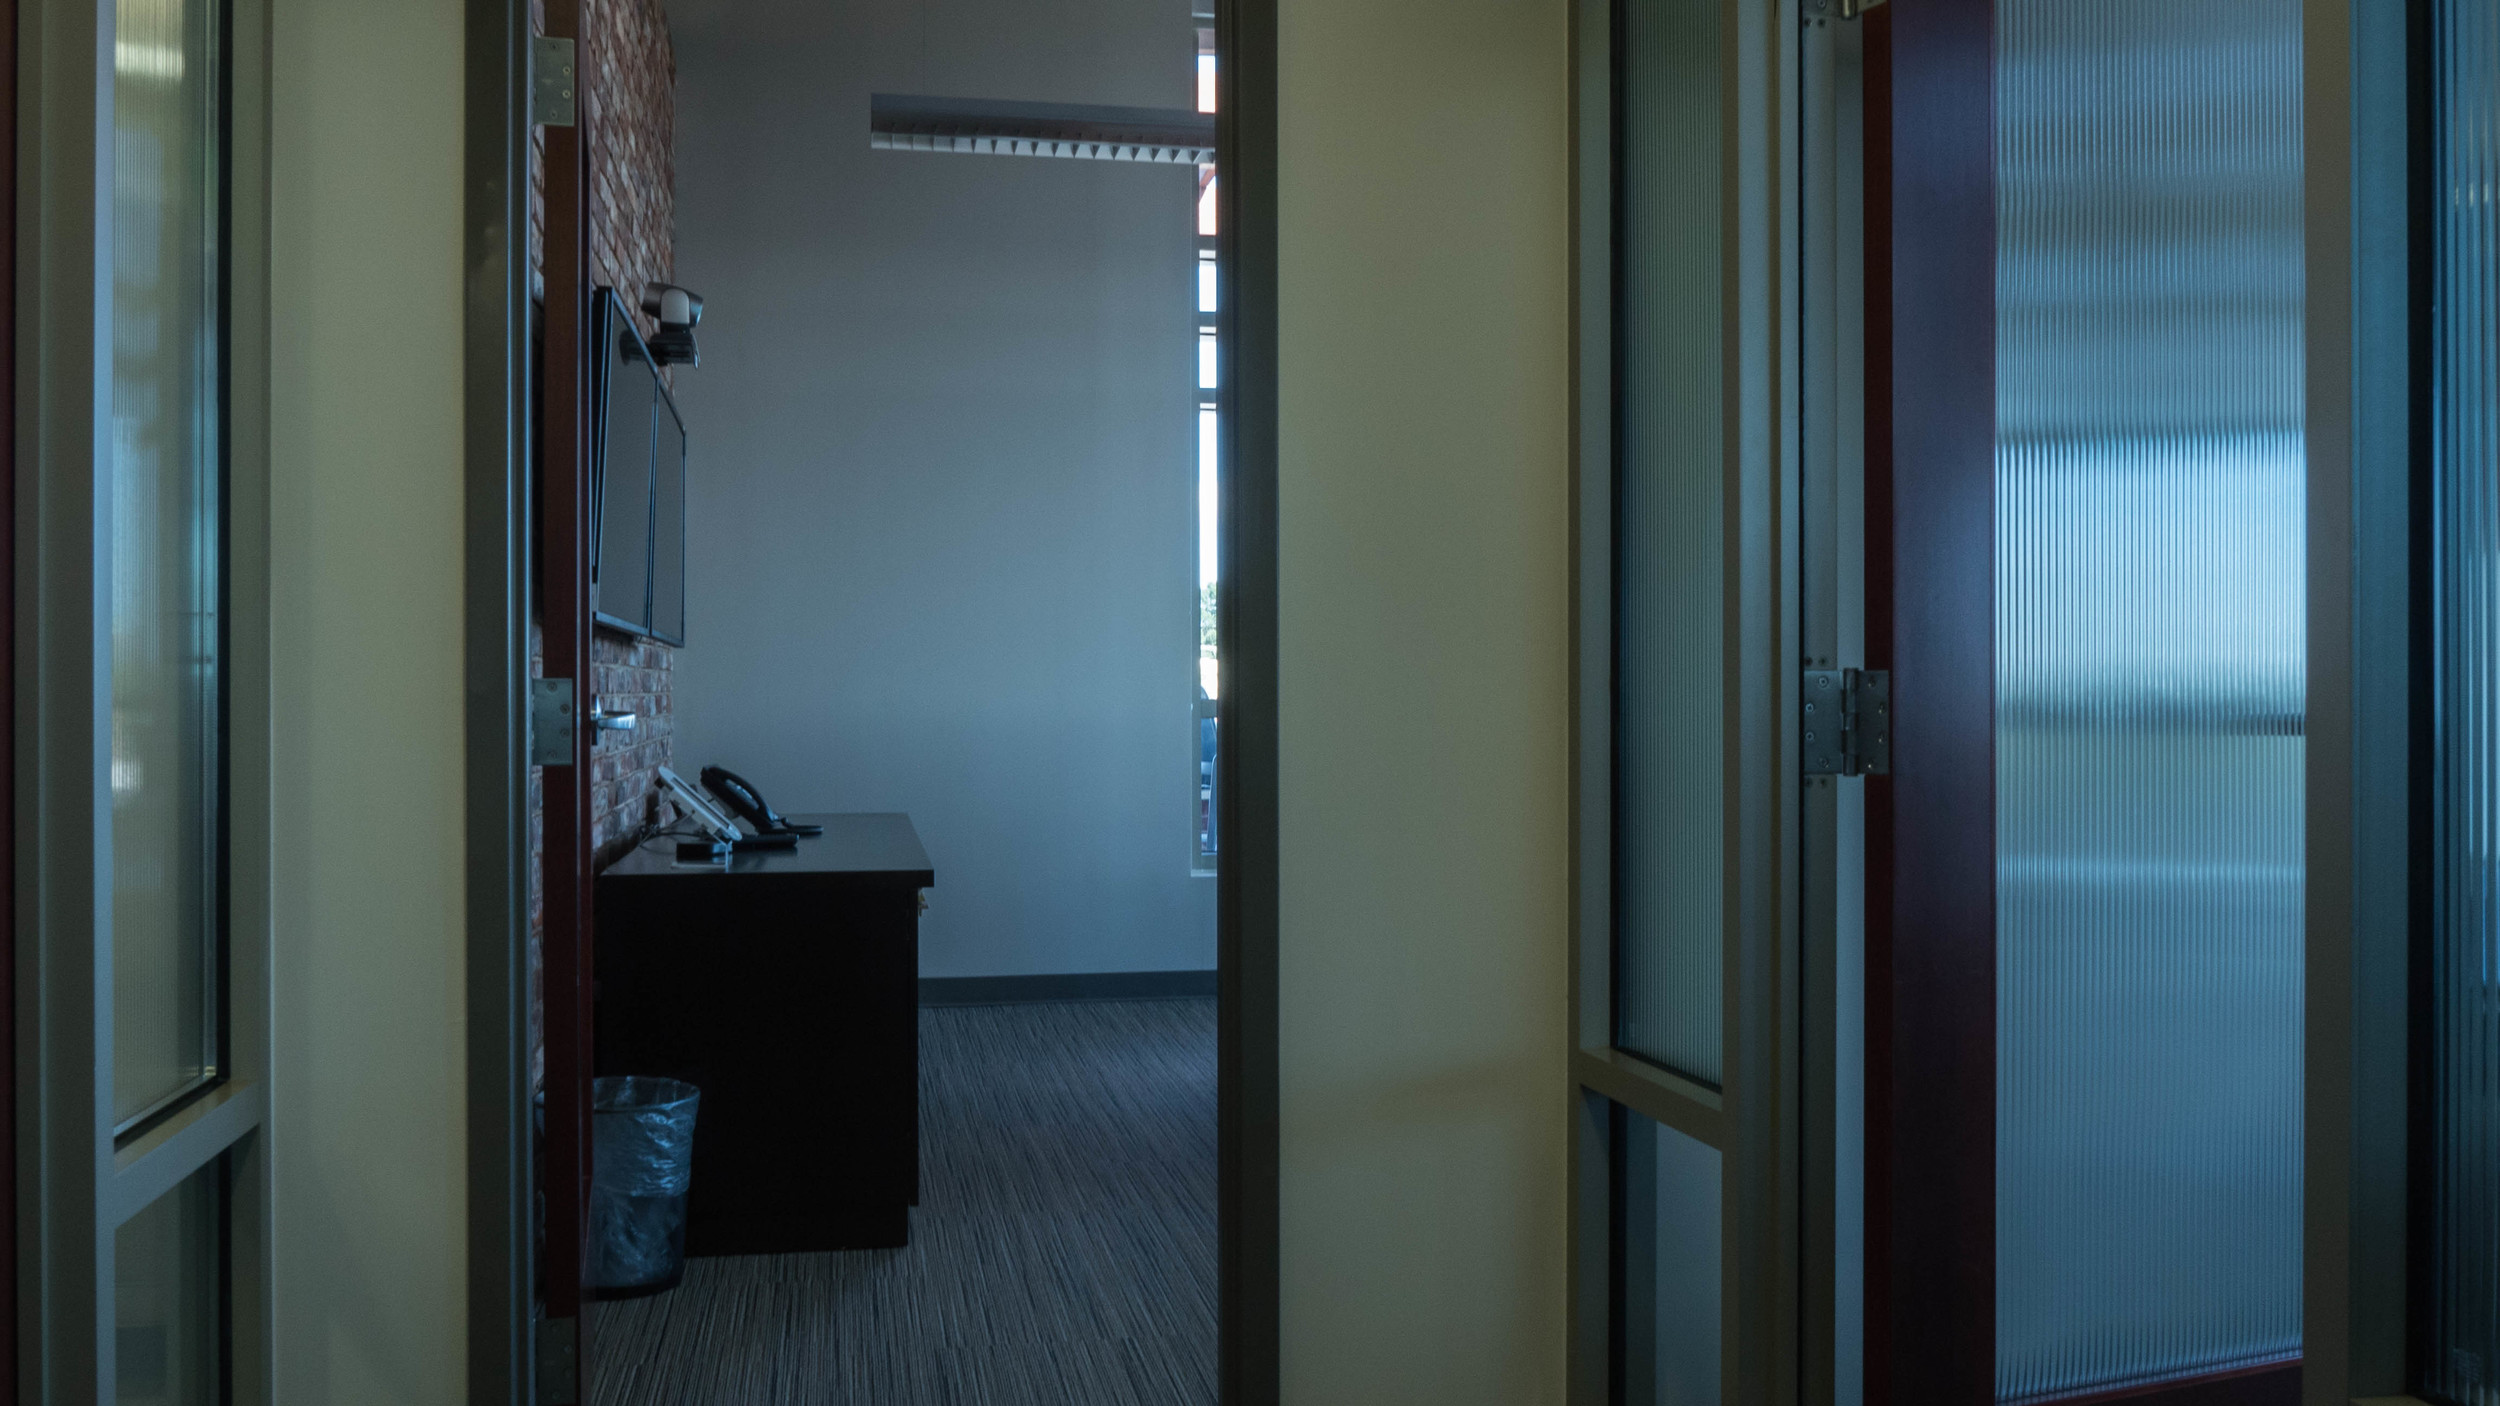 Entrance to a corner office on the third floor.